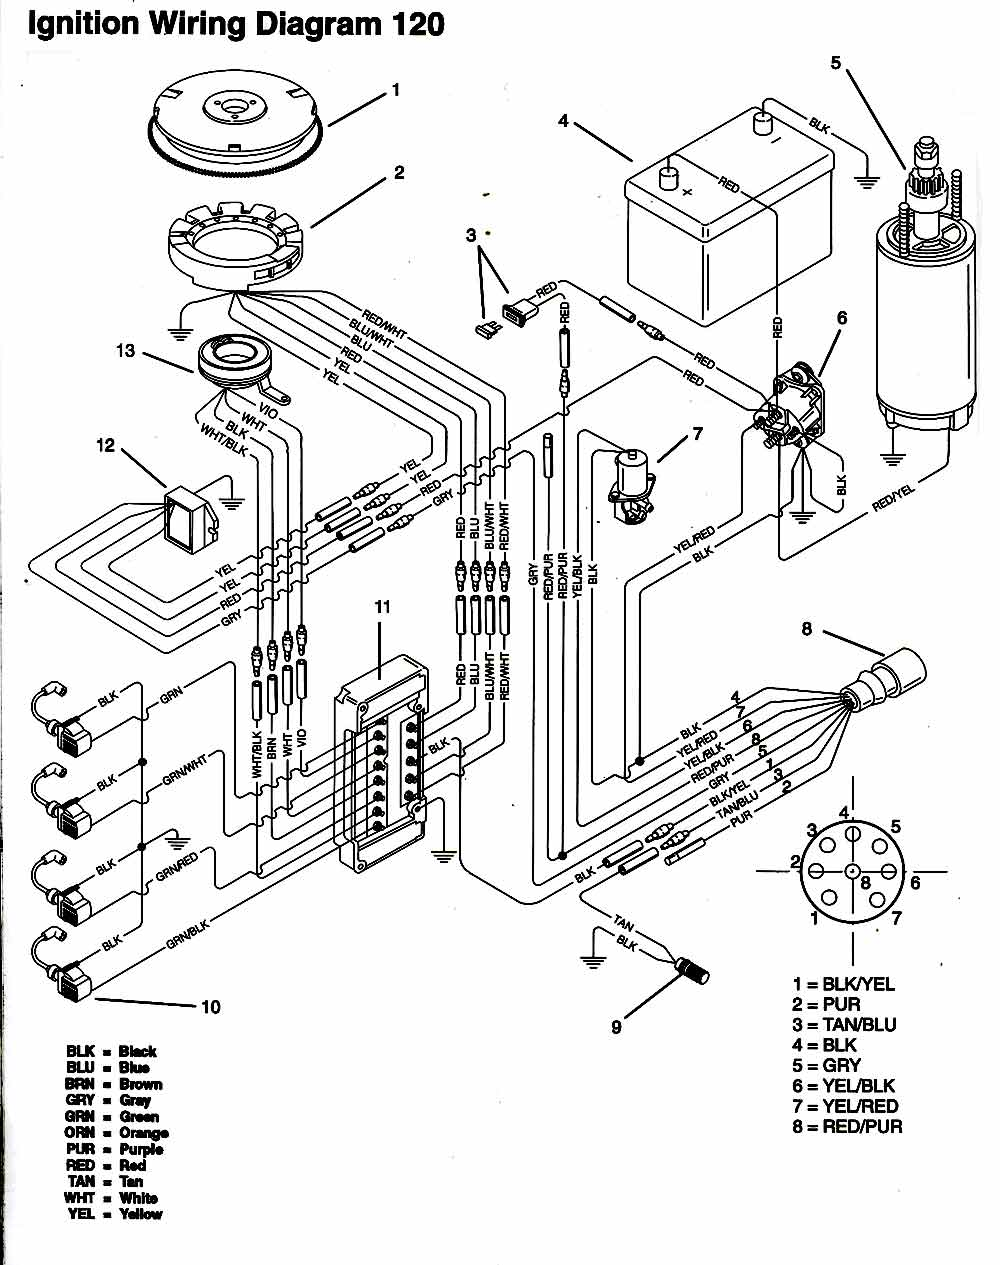 Mastertech marine chrysler force outboard wiring diagrams rh maxrules mercury outboard ignition switch wiring diagram